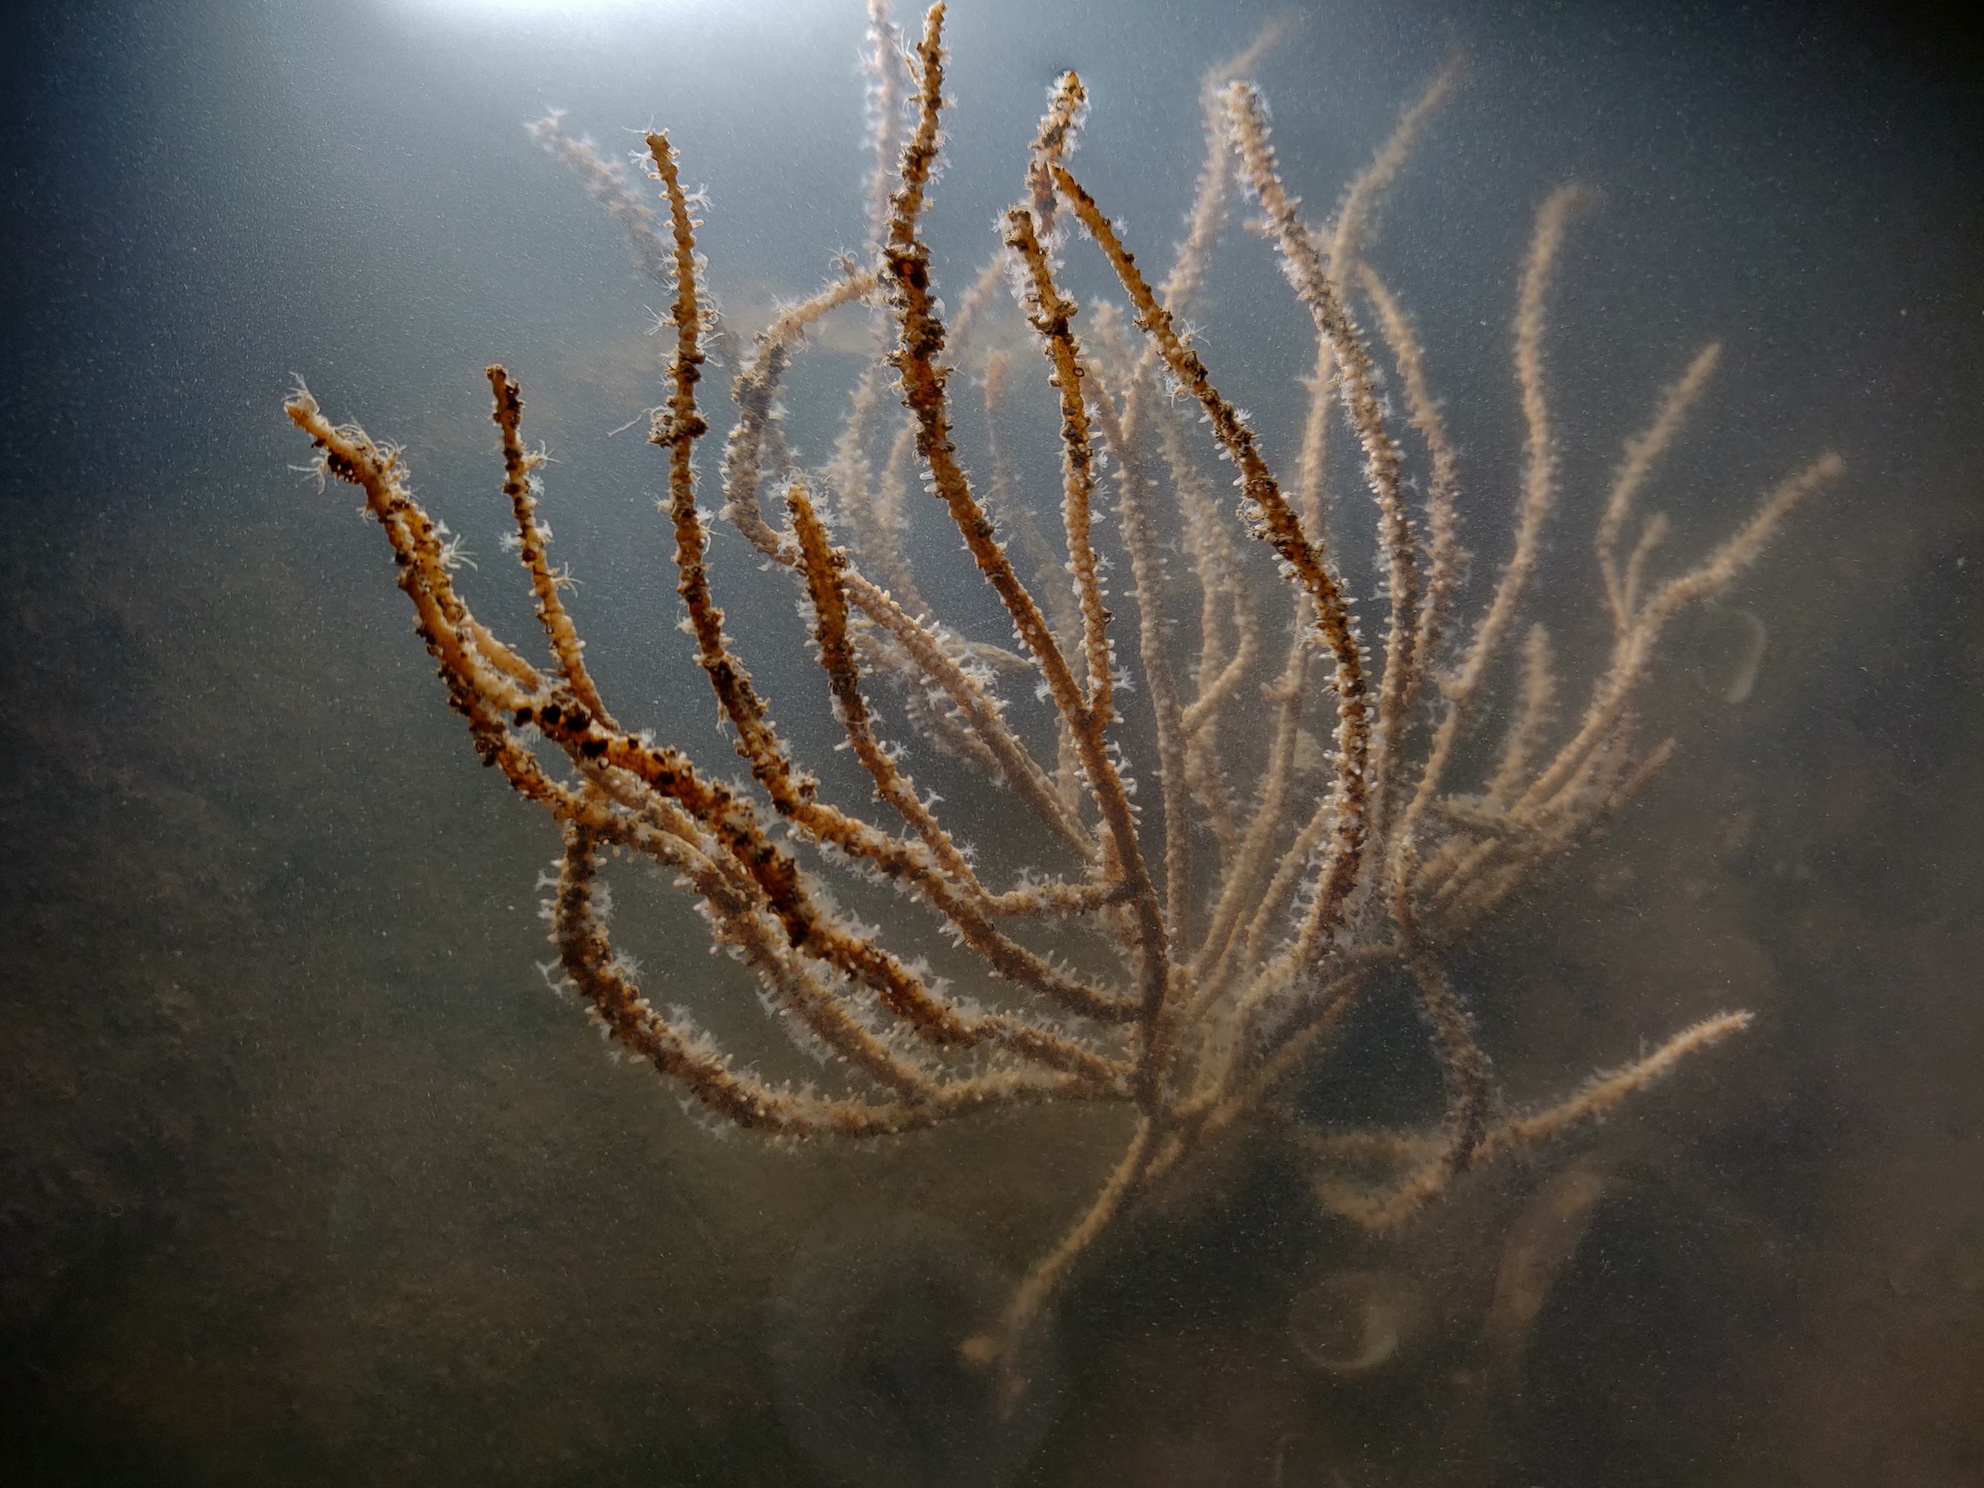 Endowed with a beautiful branching structure, sea fans usually anchor themselves in mud or sand. Photo: Sejal Mehta